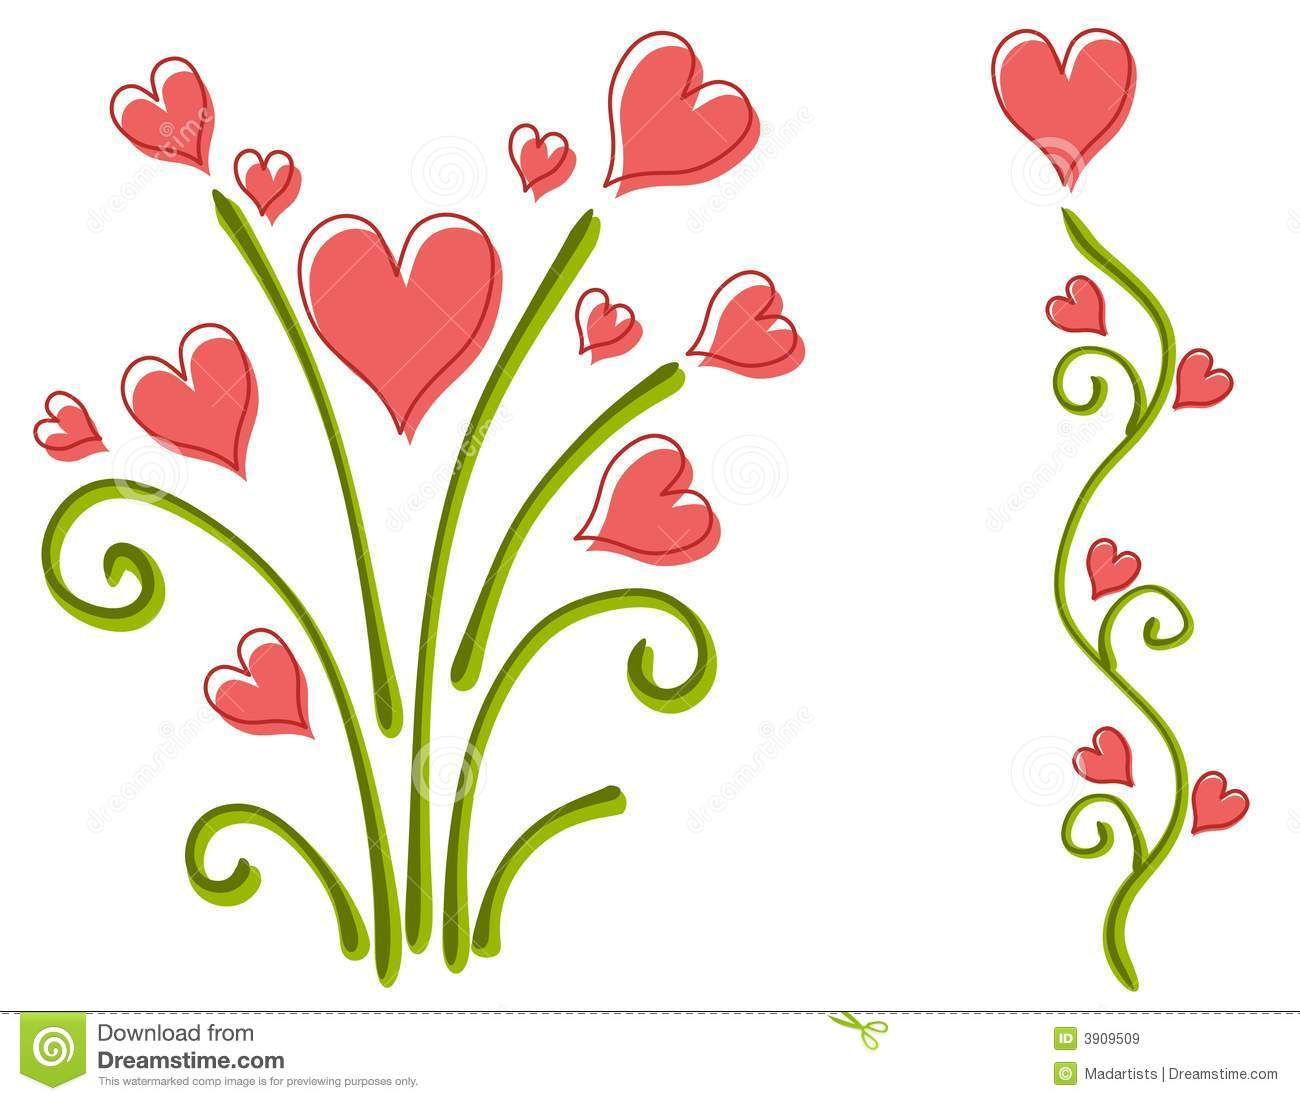 pink valentine's day heart flowers royalty free stock images, Beautiful flower